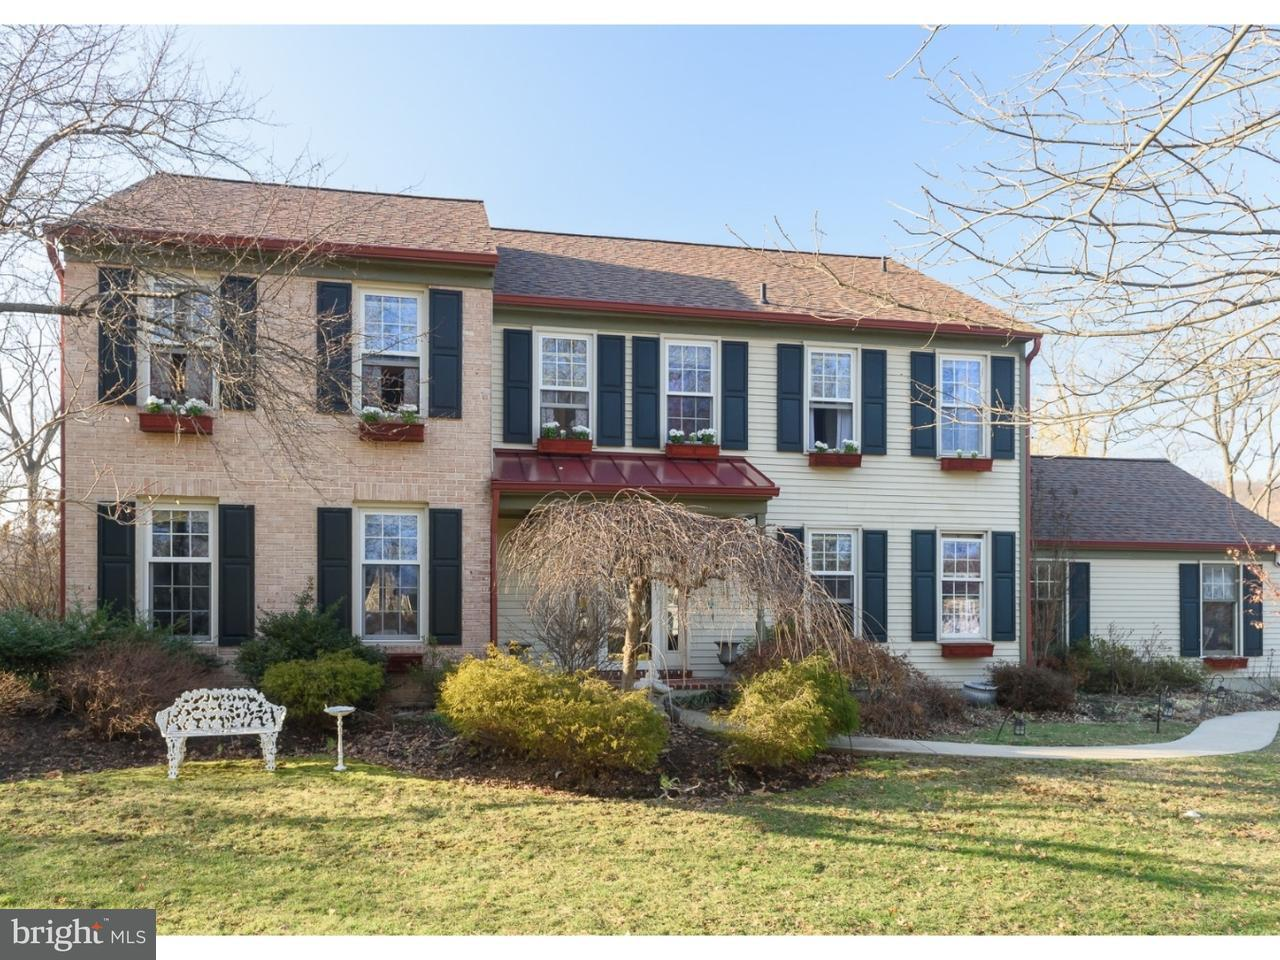 Single Family Home for Sale at 1020 ARMSTRONG Court Chesterbrook, Pennsylvania 19087 United States